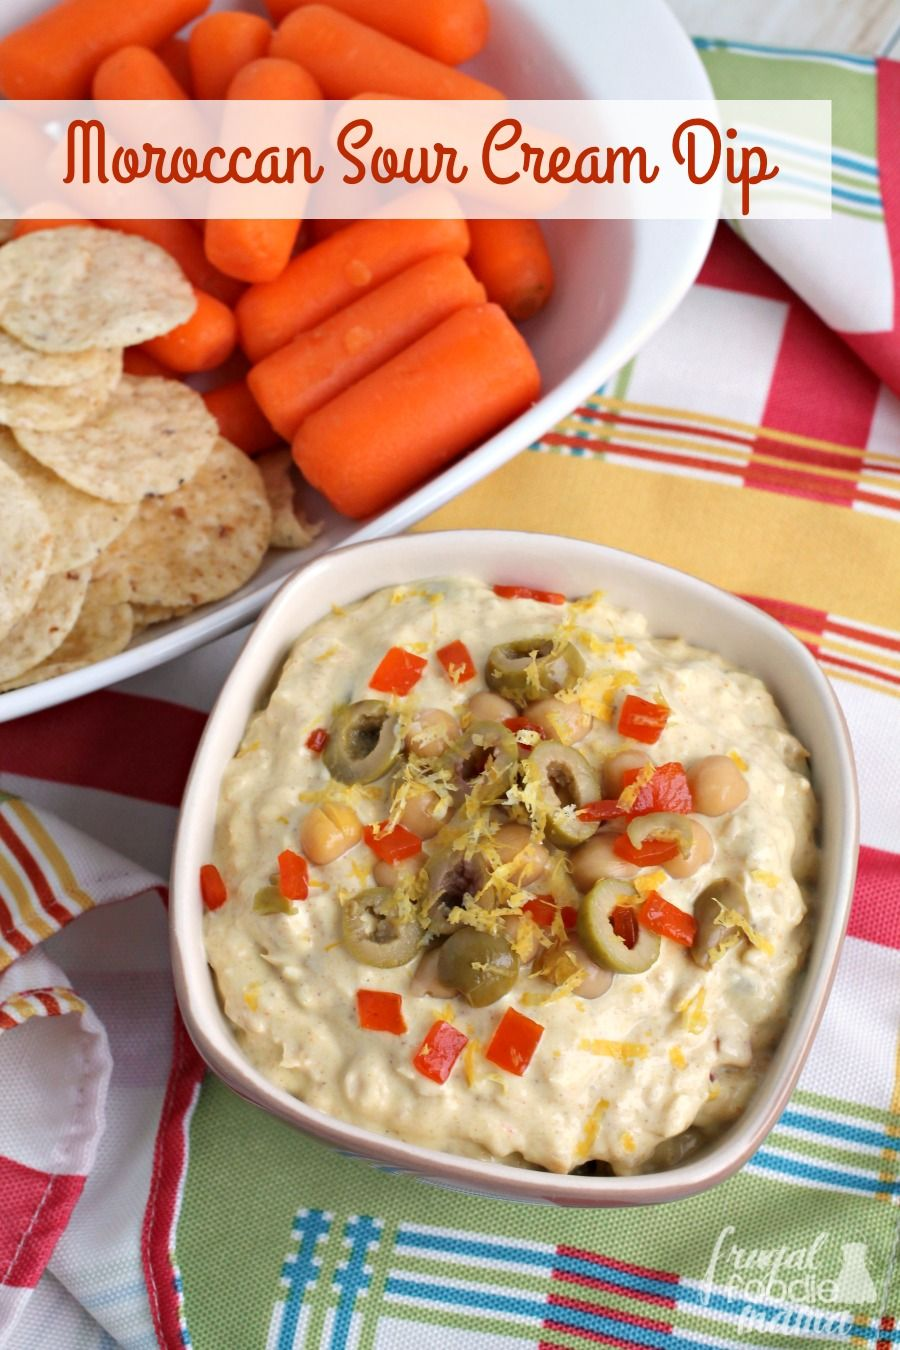 Score a touchdown for the big game with this budget friendly & flavorful Moroccan Sour Cream Dip. #ad #savealotinsiders #SwitchAndSave